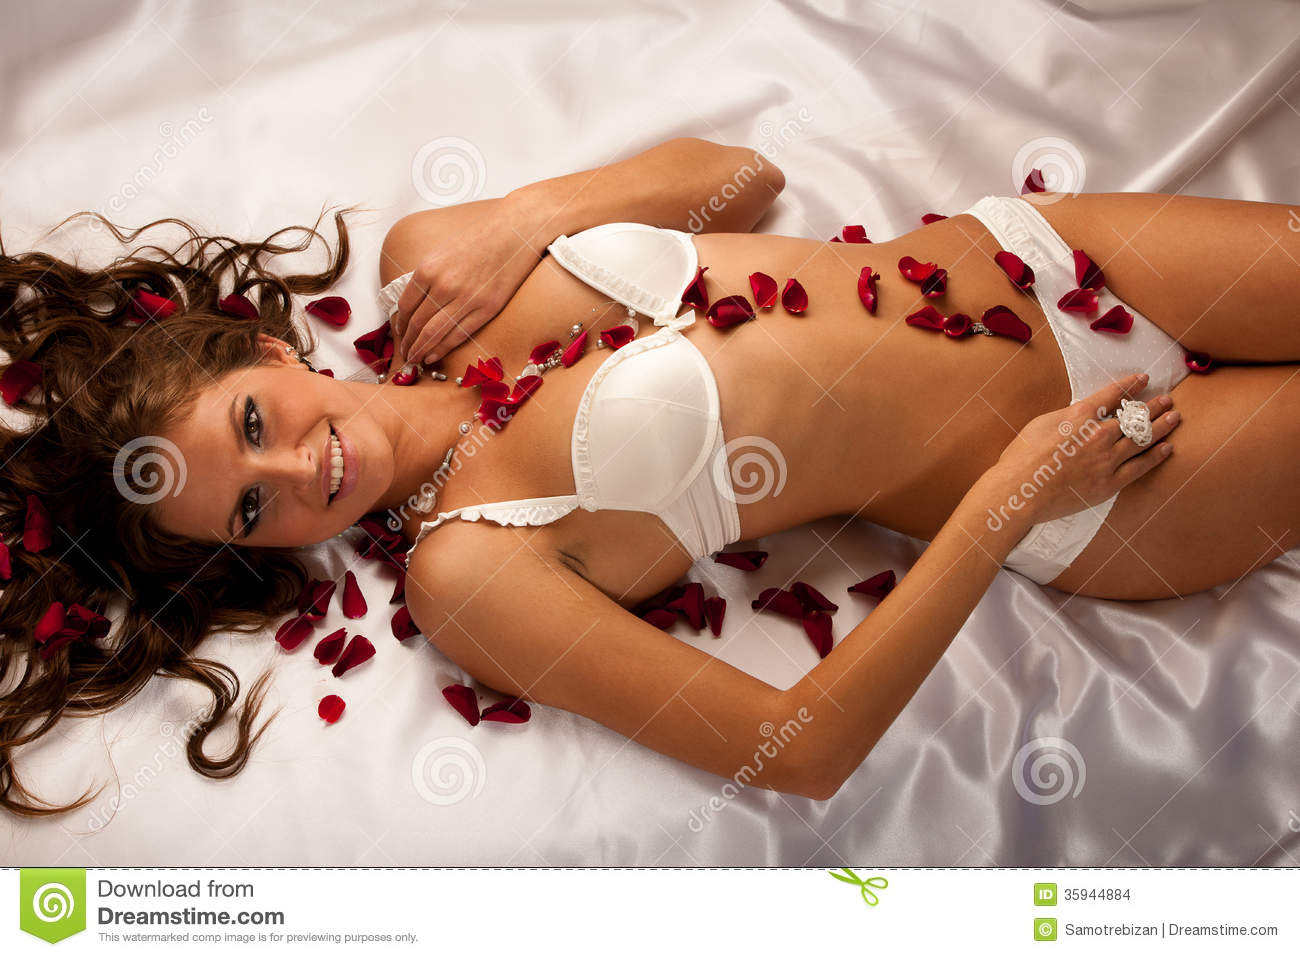 ... White Lingerie Lying In Bed Of Ros Stock Images - Image: 35944884